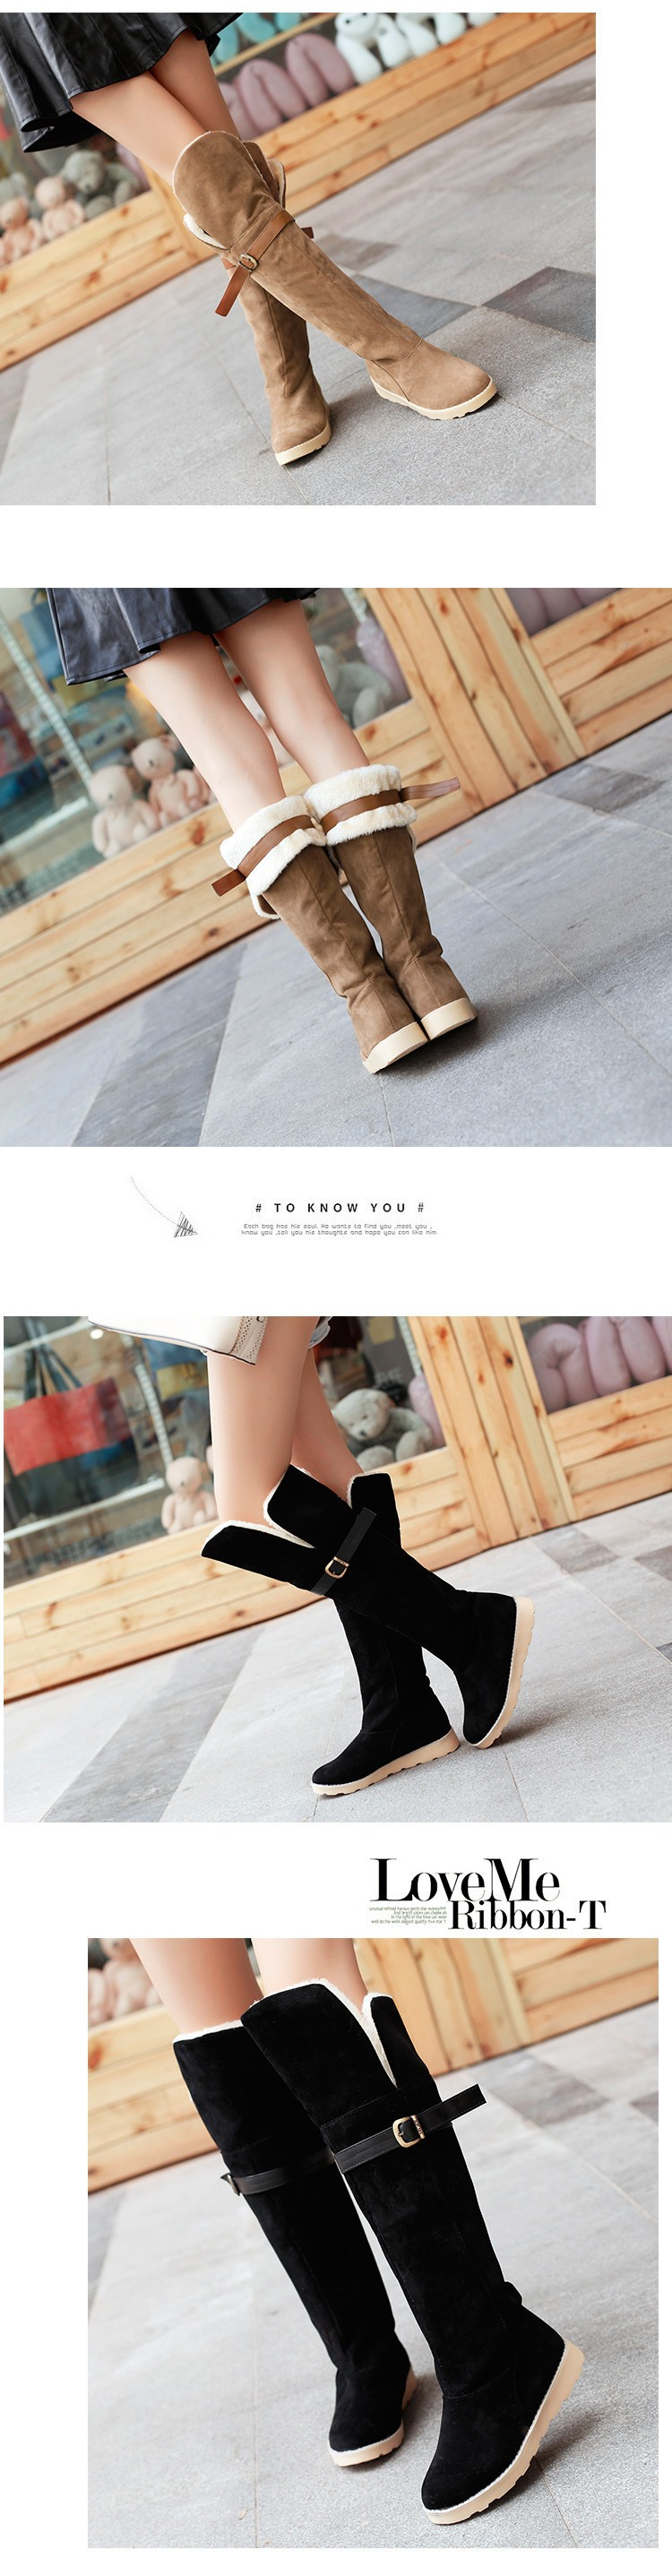 2015 Hot Sale Winter Boots Warm Snow Boots For Women Fashion Flat Heels Knee-High Botas Mujer Casual Women Shoes BT4 (3)